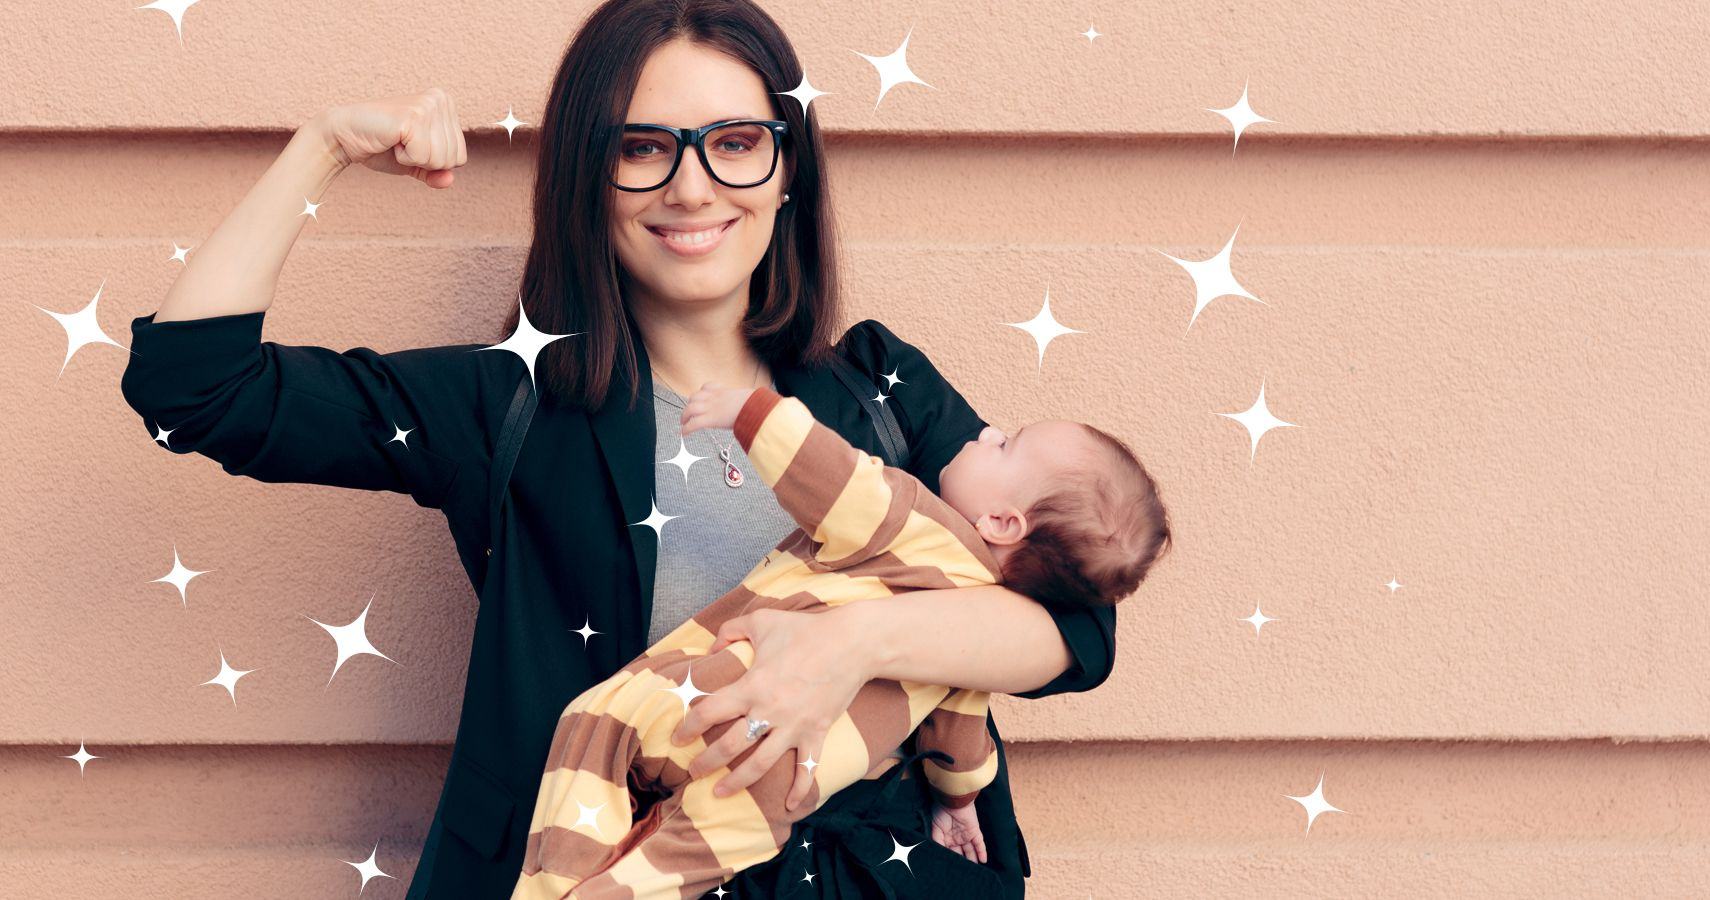 Confident Mom: How To Be One, Even When Unsure | Moms.com